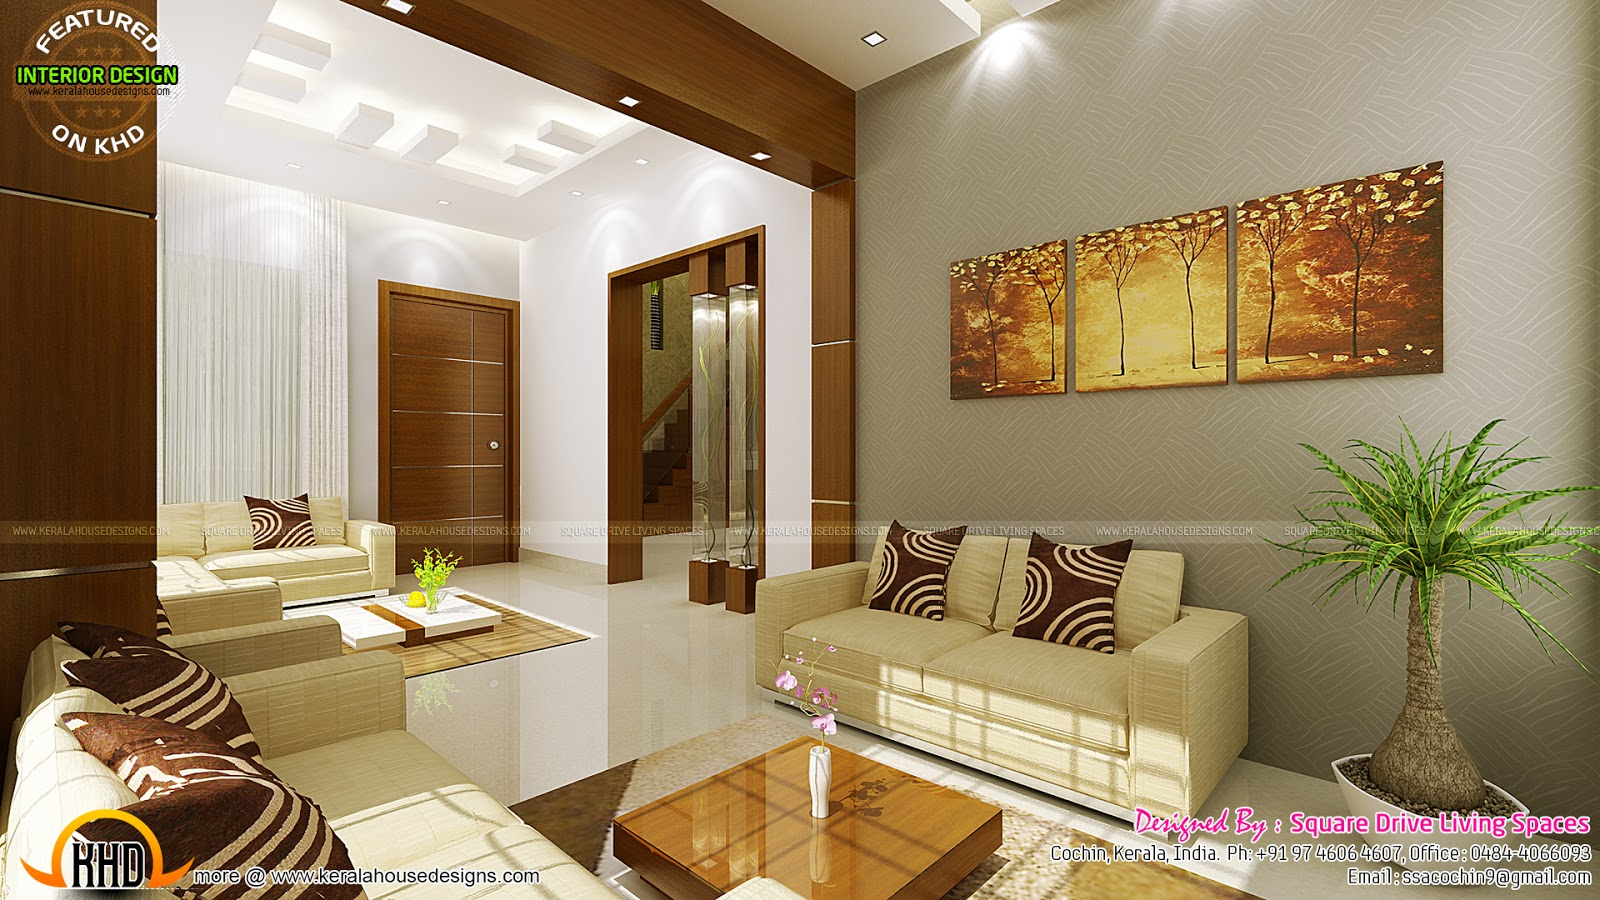 Contemporary kitchen dining and living room kerala home Interiors for homes